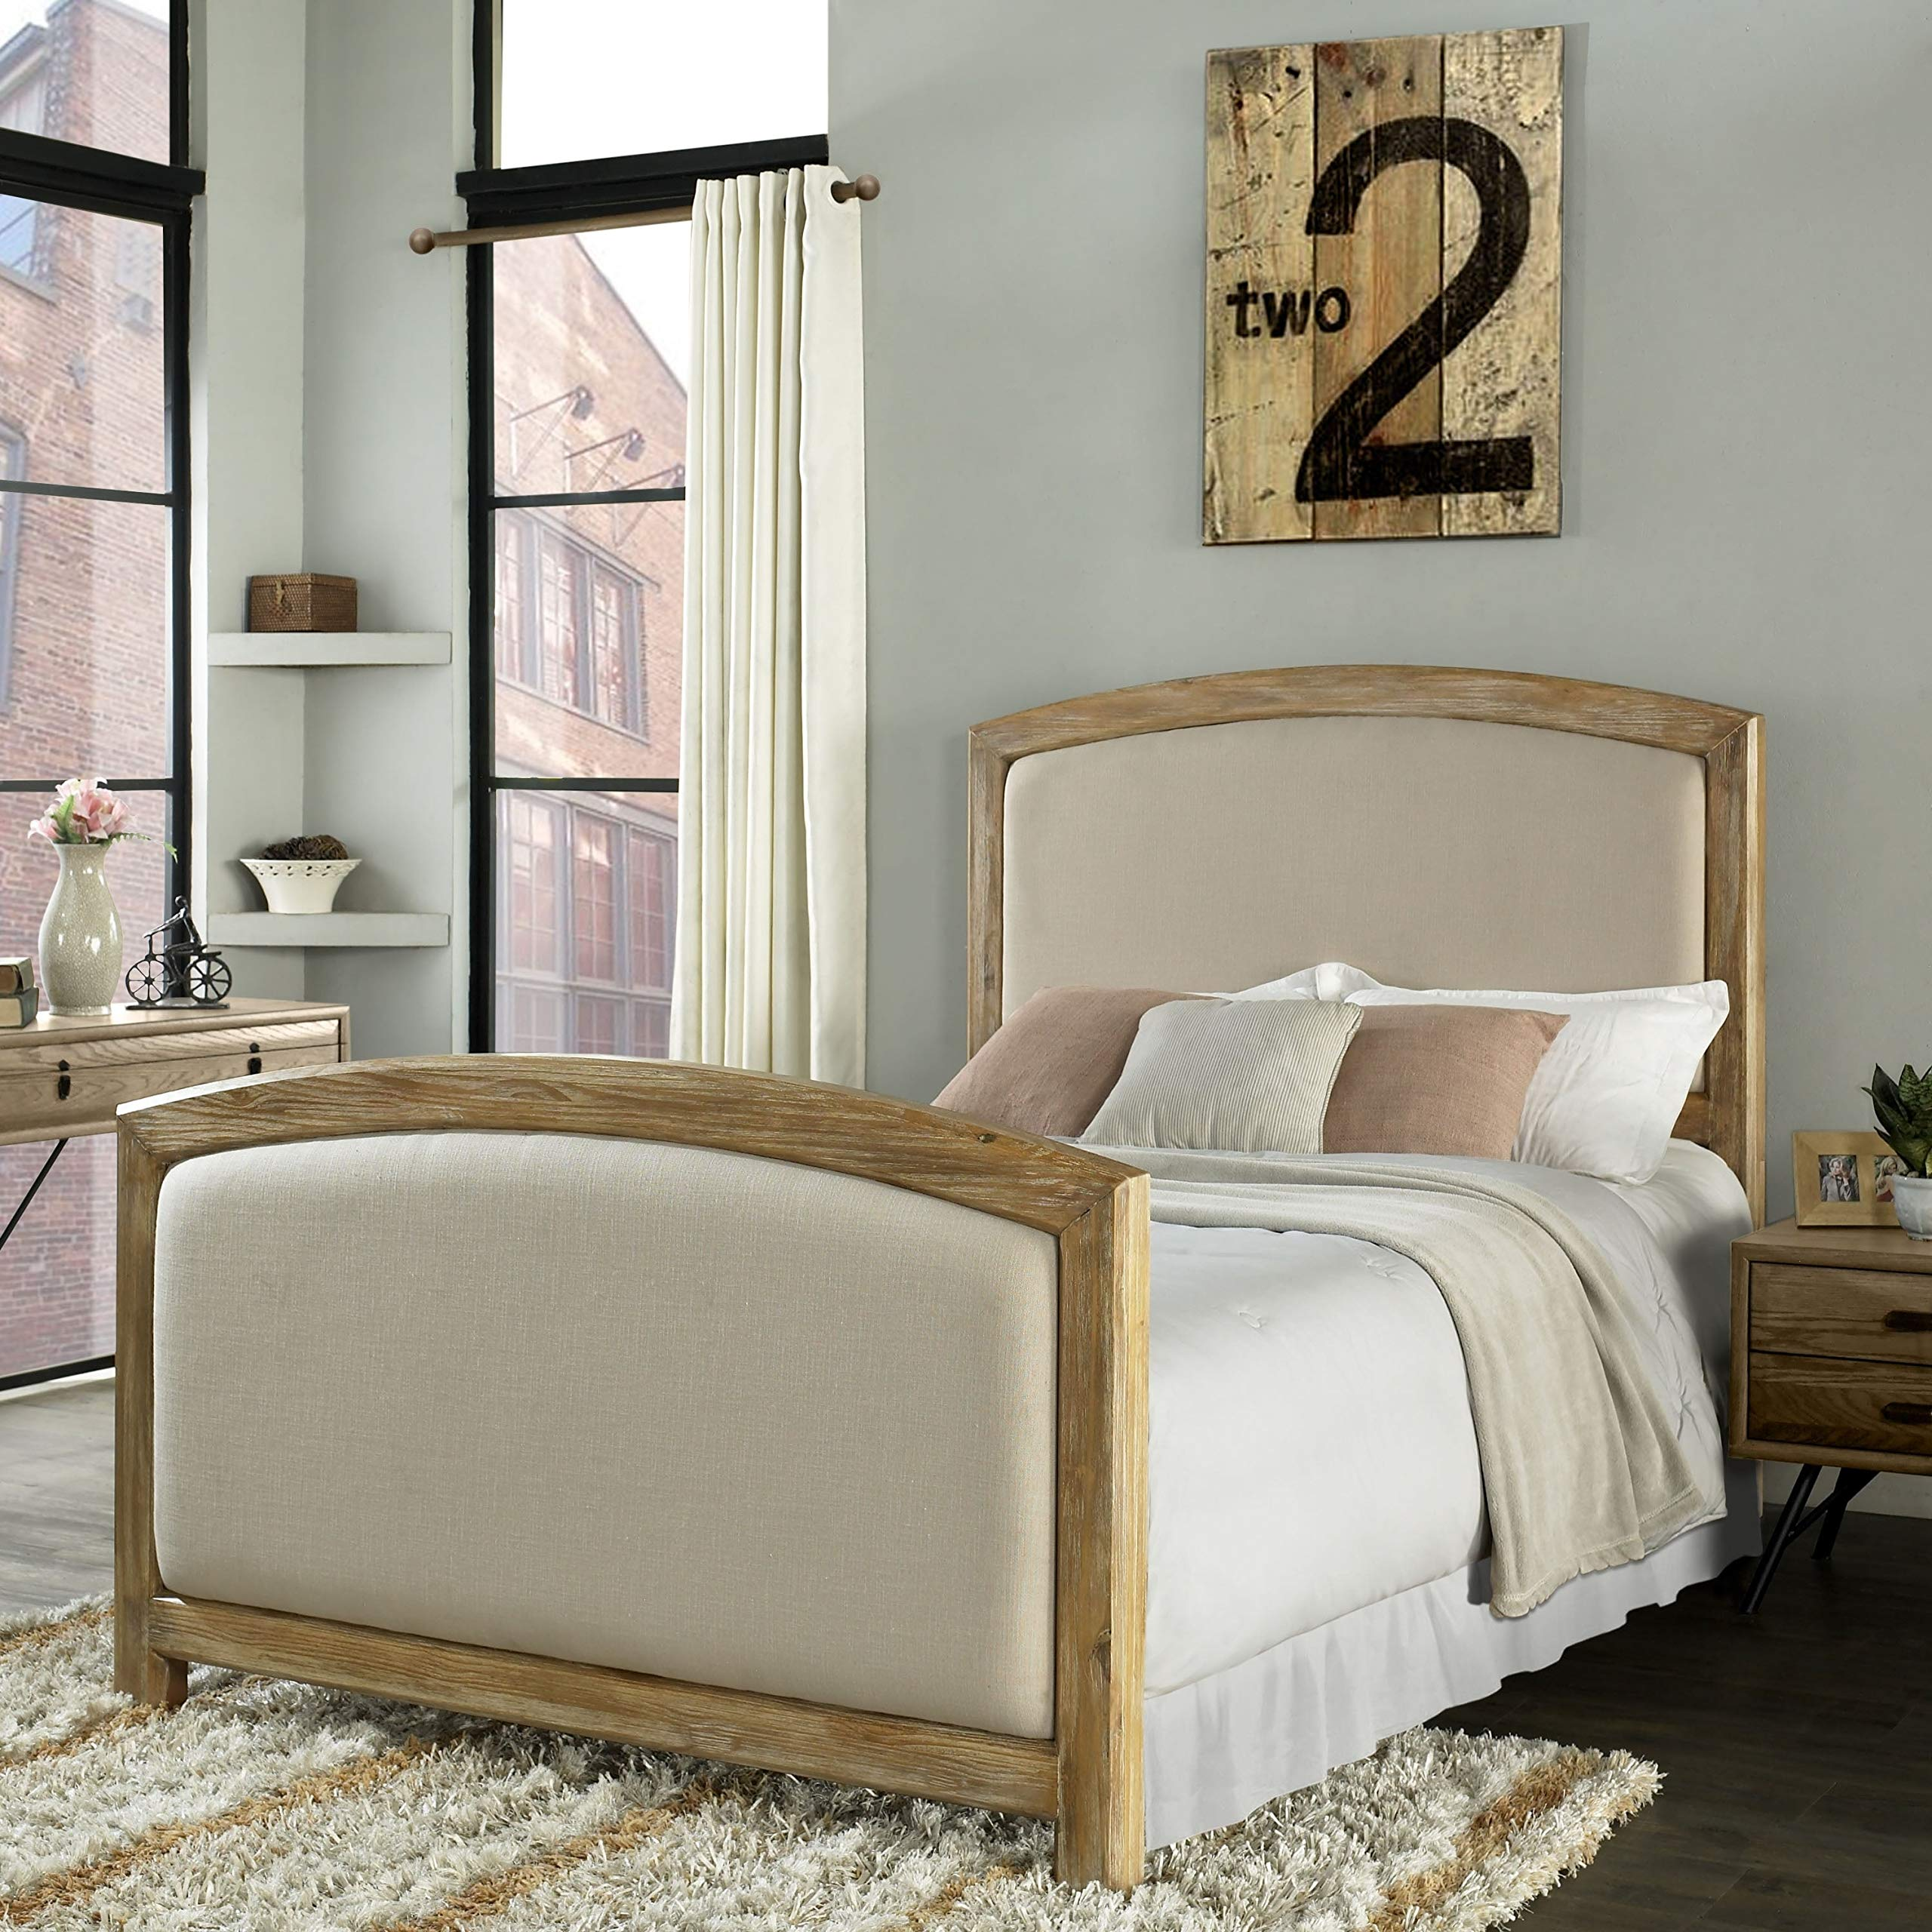 Cambria Queen Headboard and Footboard in Weathered Pine Crème Linen Cream Traditional by Unknown